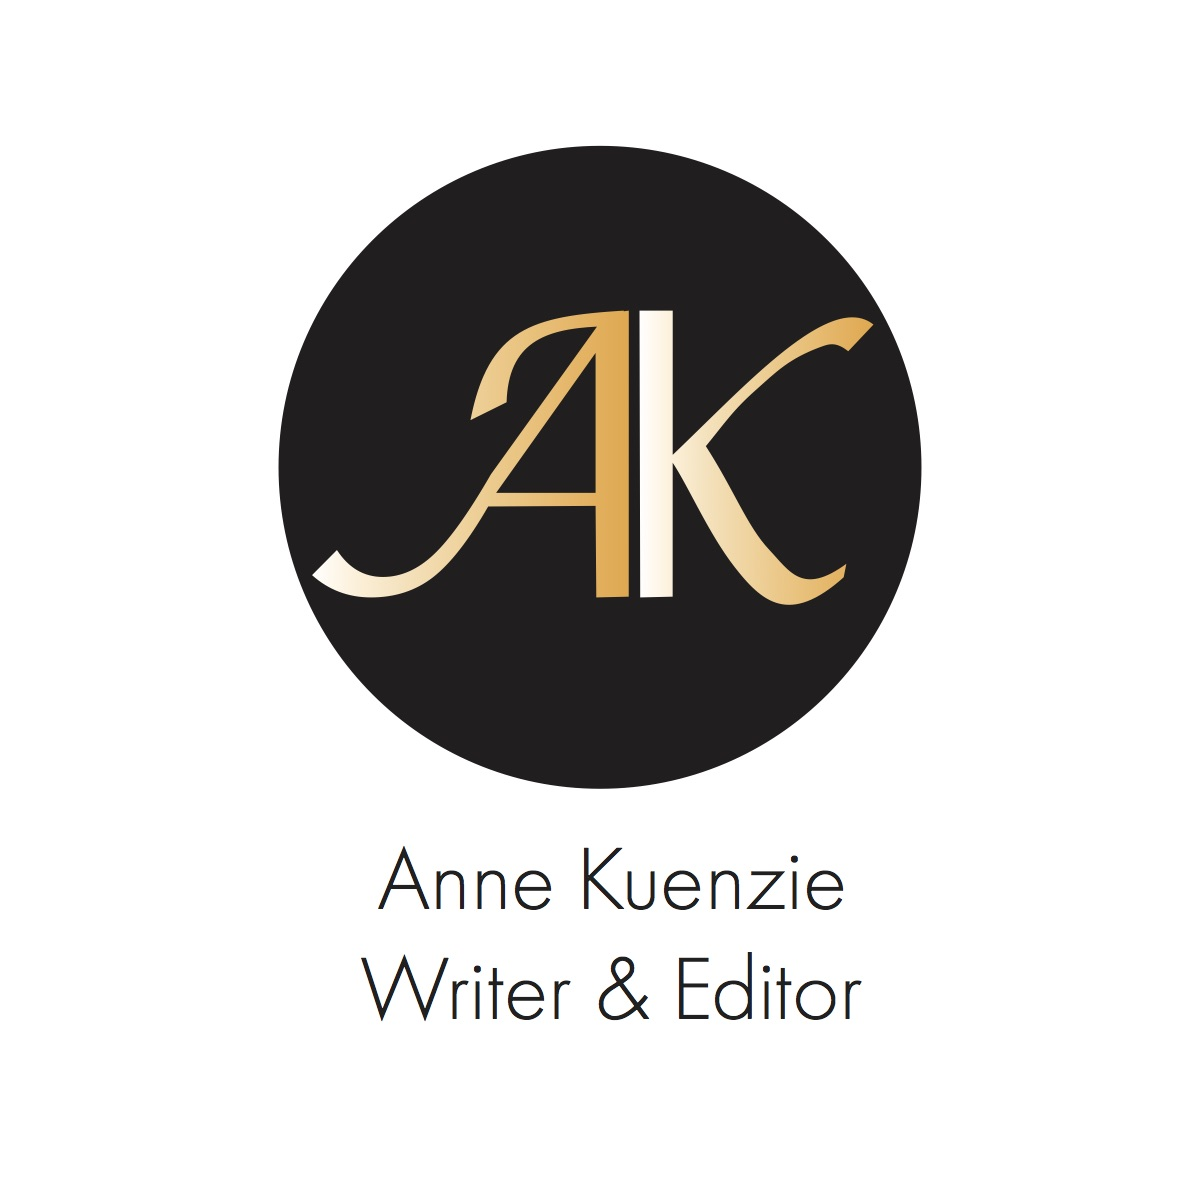 Anne KuenzieWriter & Editor - Anne Kuenzie is a writer and editor in Madison Wisconsin. She asked me to create a logo and business card for her. Because of Anne's vibrant personality, I wanted to create a visual brand that was striking, modern, feminine and powerful.Click on the image to see more of the project.